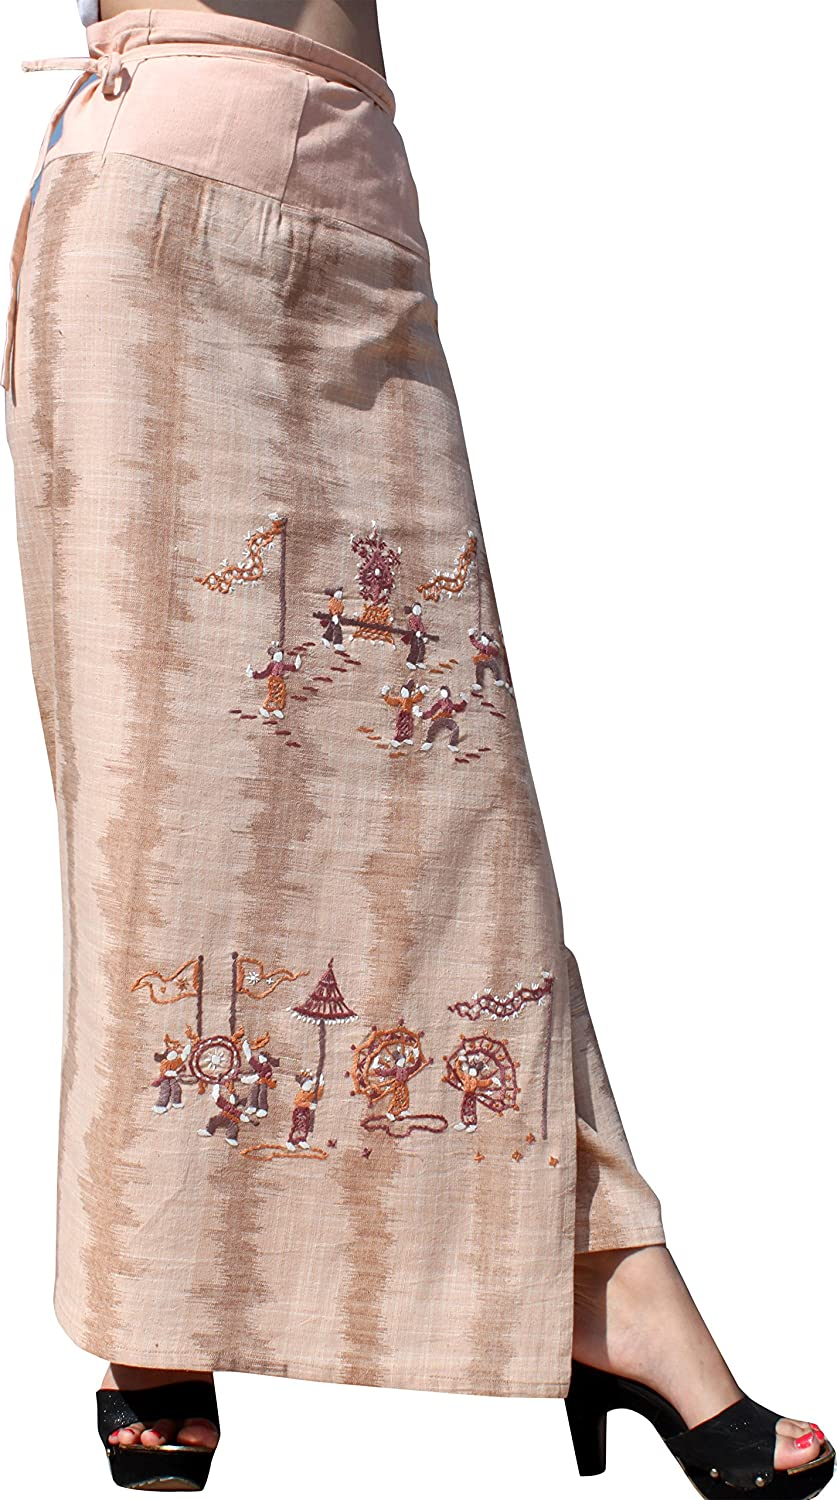 Full Funk Soft Cotton Thai Wrap Skirt Embroidered Art of Southern Festival